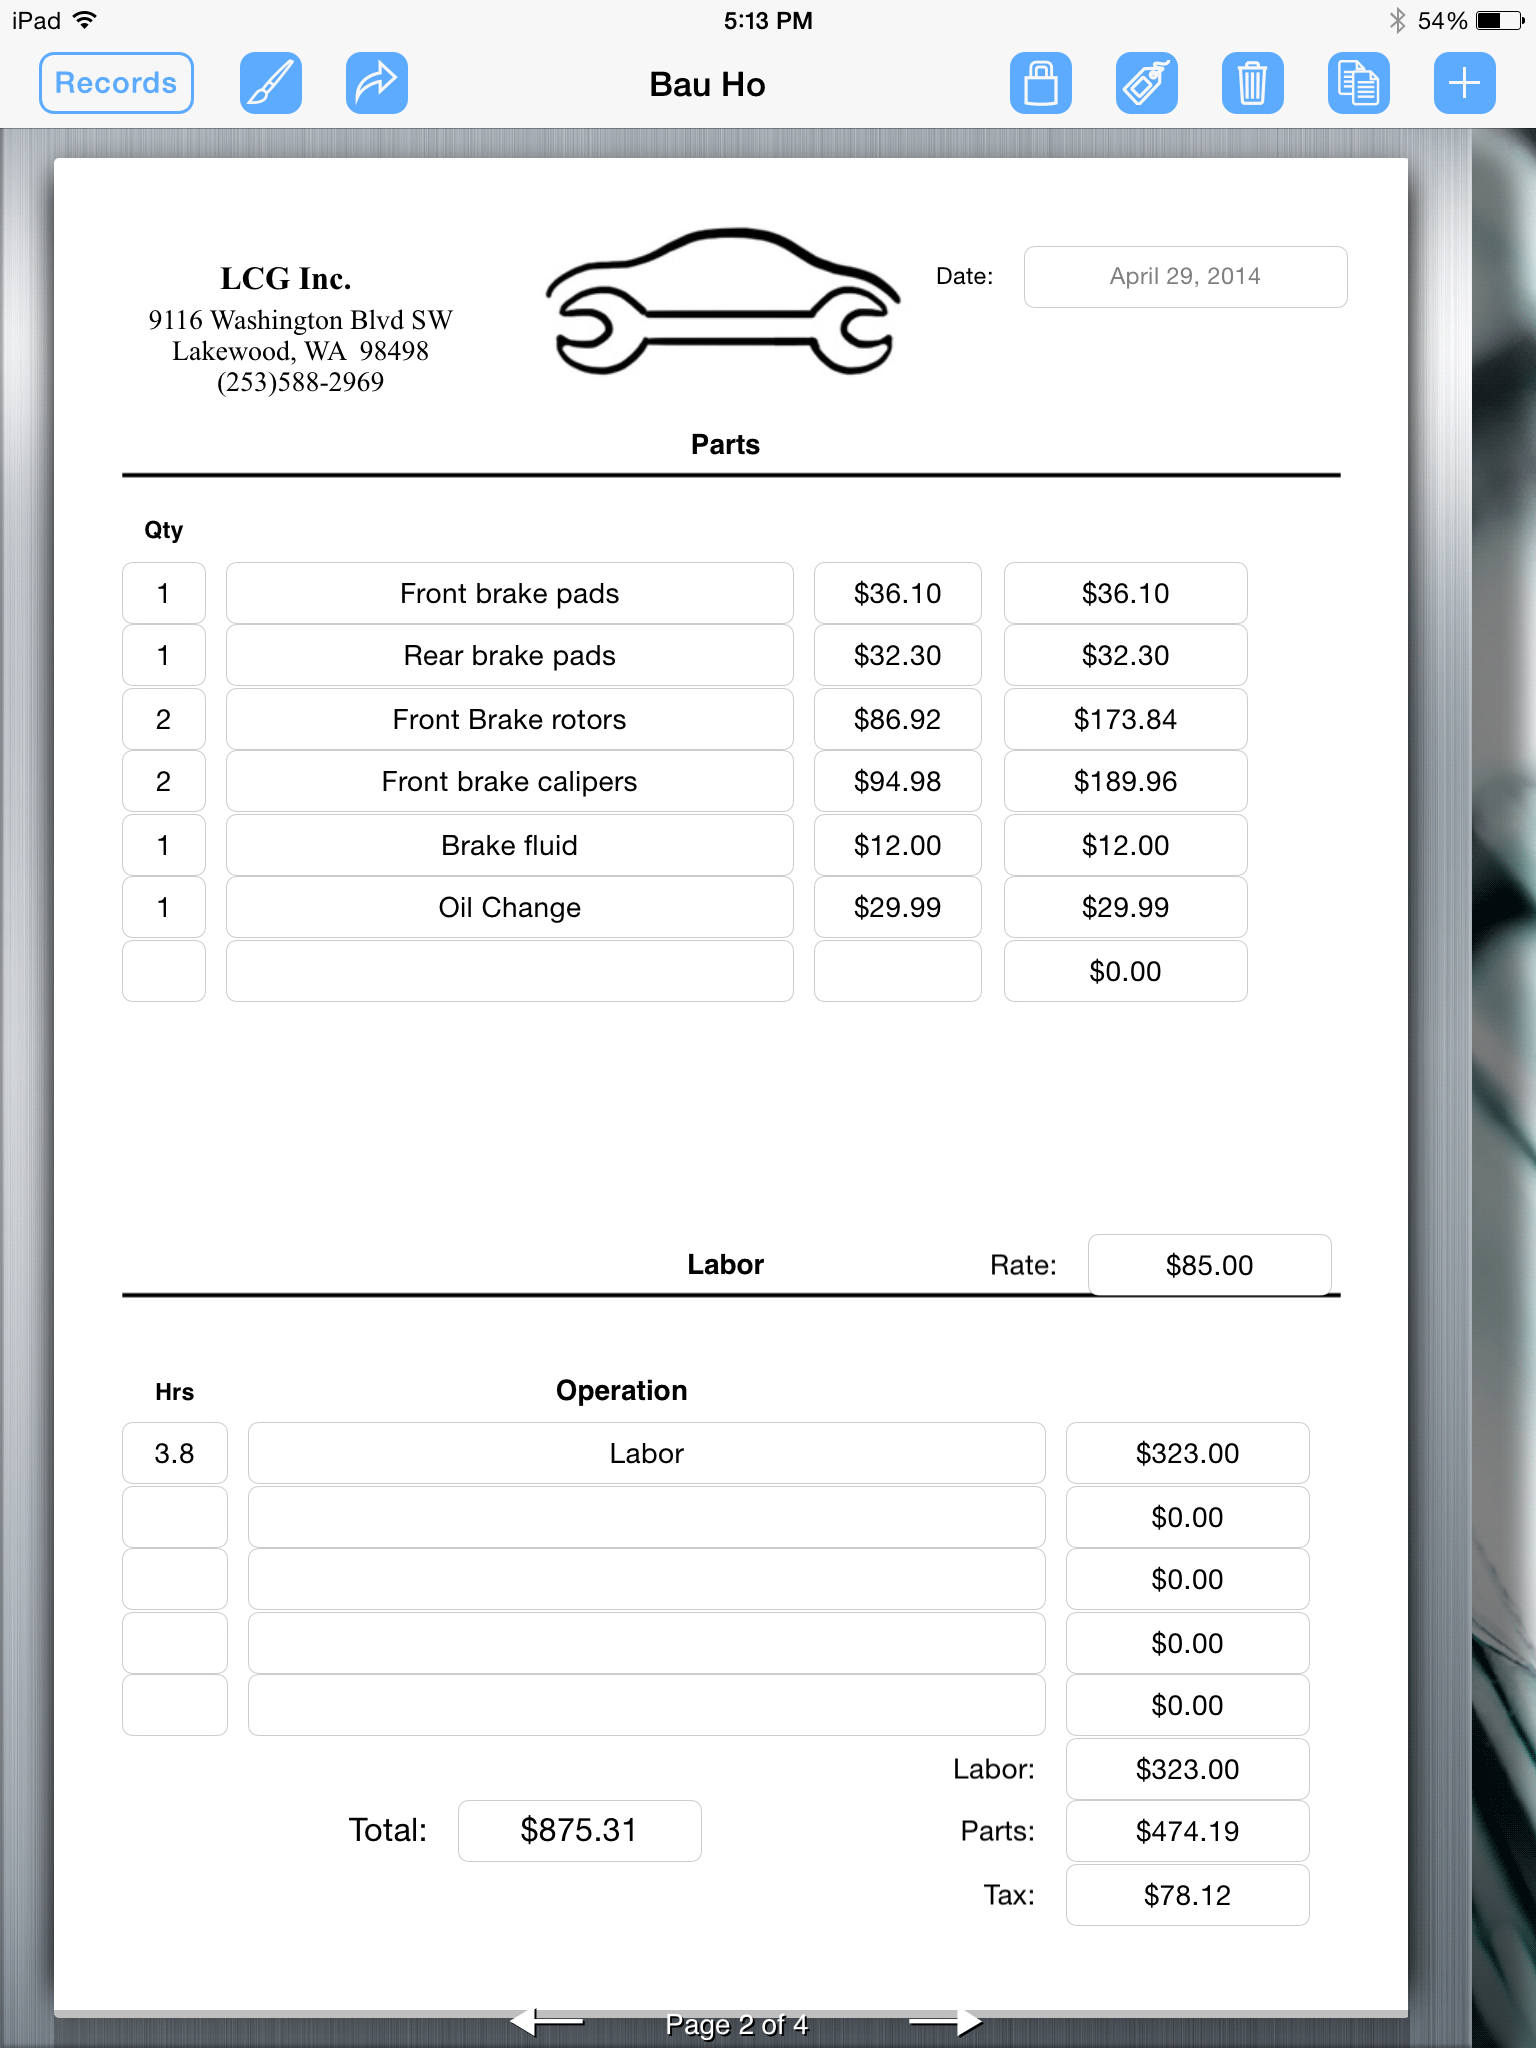 auto repair service uses ipad for creating an invoice | form, Invoice templates